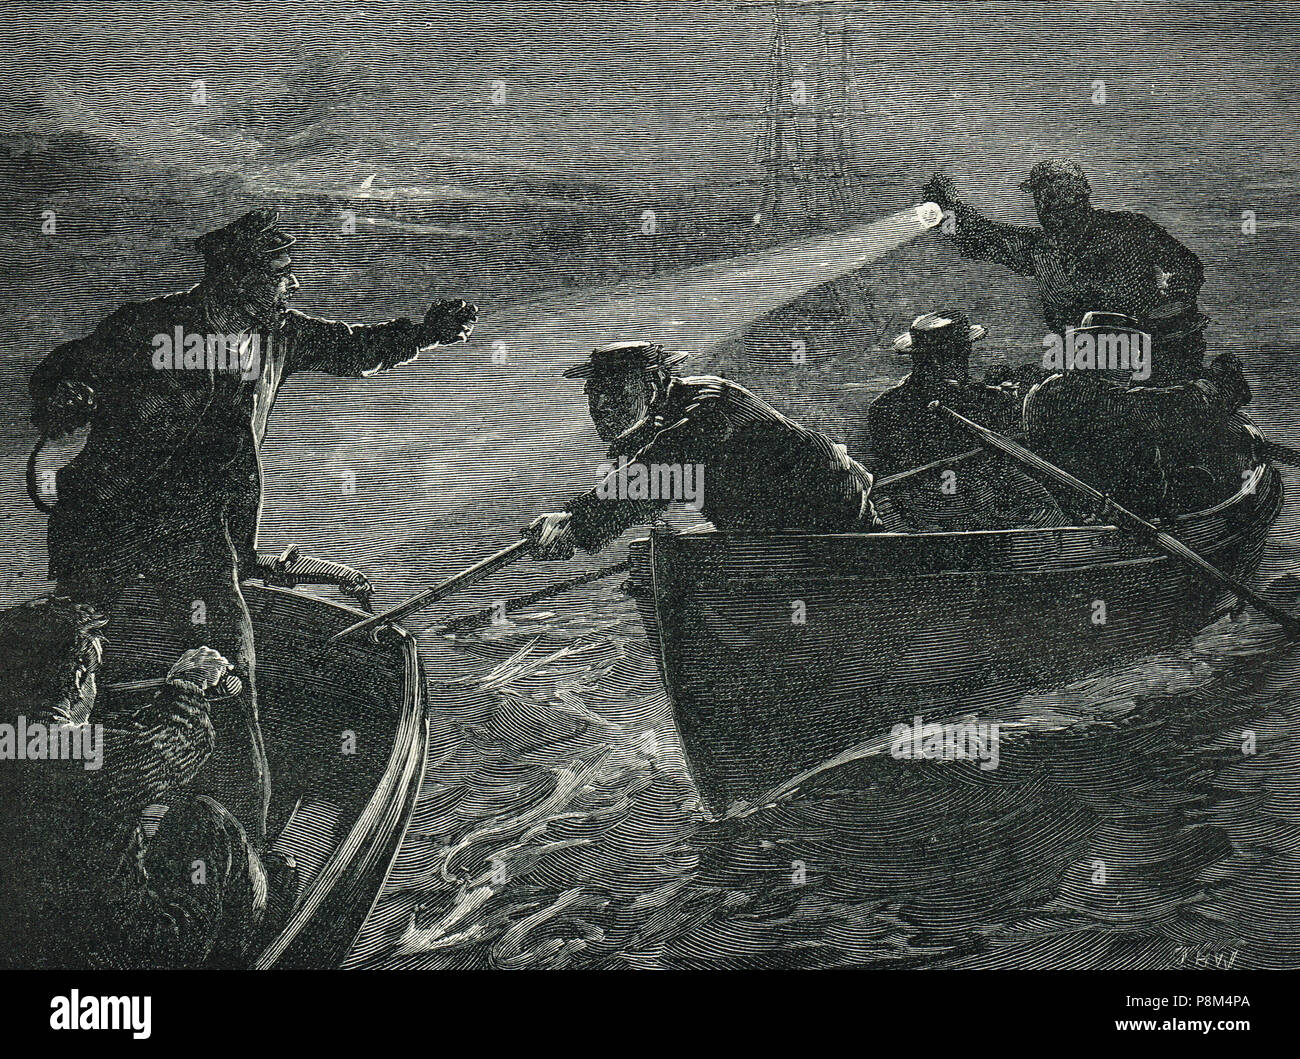 The arrest of sailors from the CSS Shenandoah, local men who had stowed away on the vessel to fight for the Confederate cause, caught trying to escape by the Williamstown water police, in Hobson's Bay, Melbourne harbour, Australia, 14-15 February 1865 - Stock Image